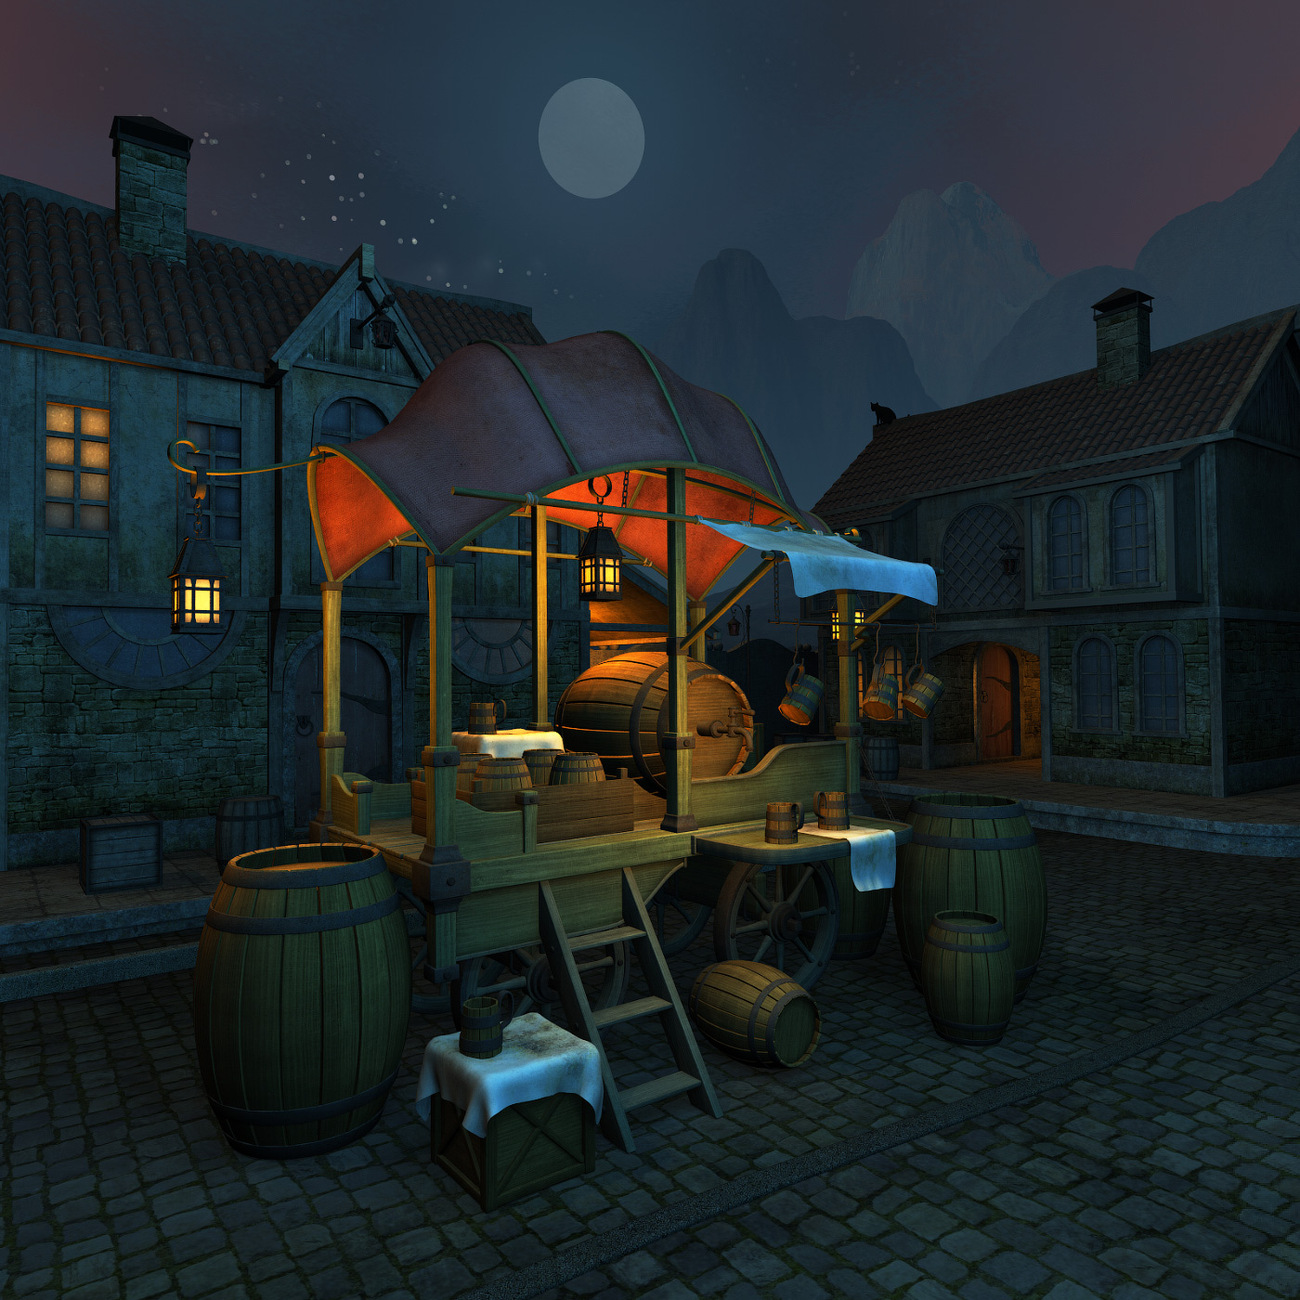 Moonshiner stall by 1971s